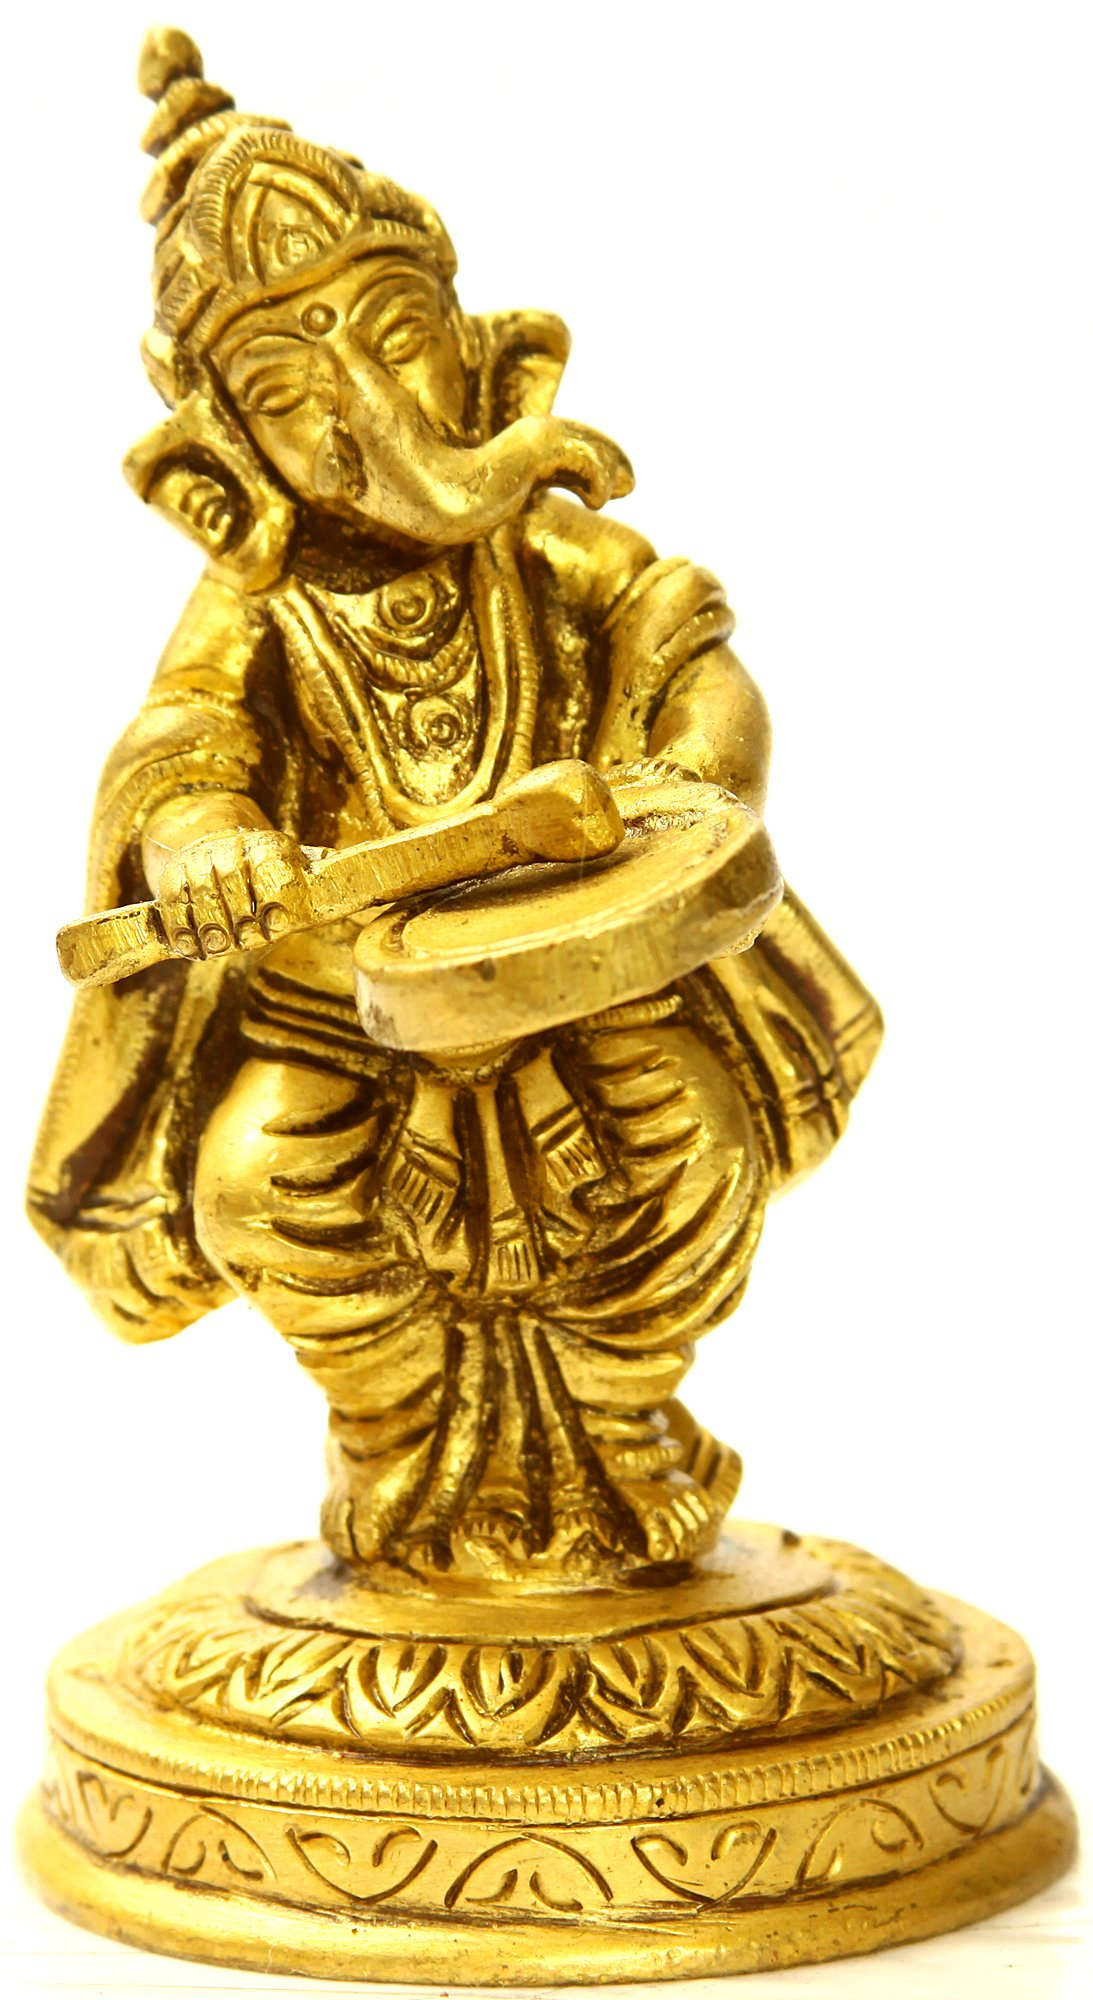 Lord Ganesha Playing a Musical Instrument (Small Sculpture)